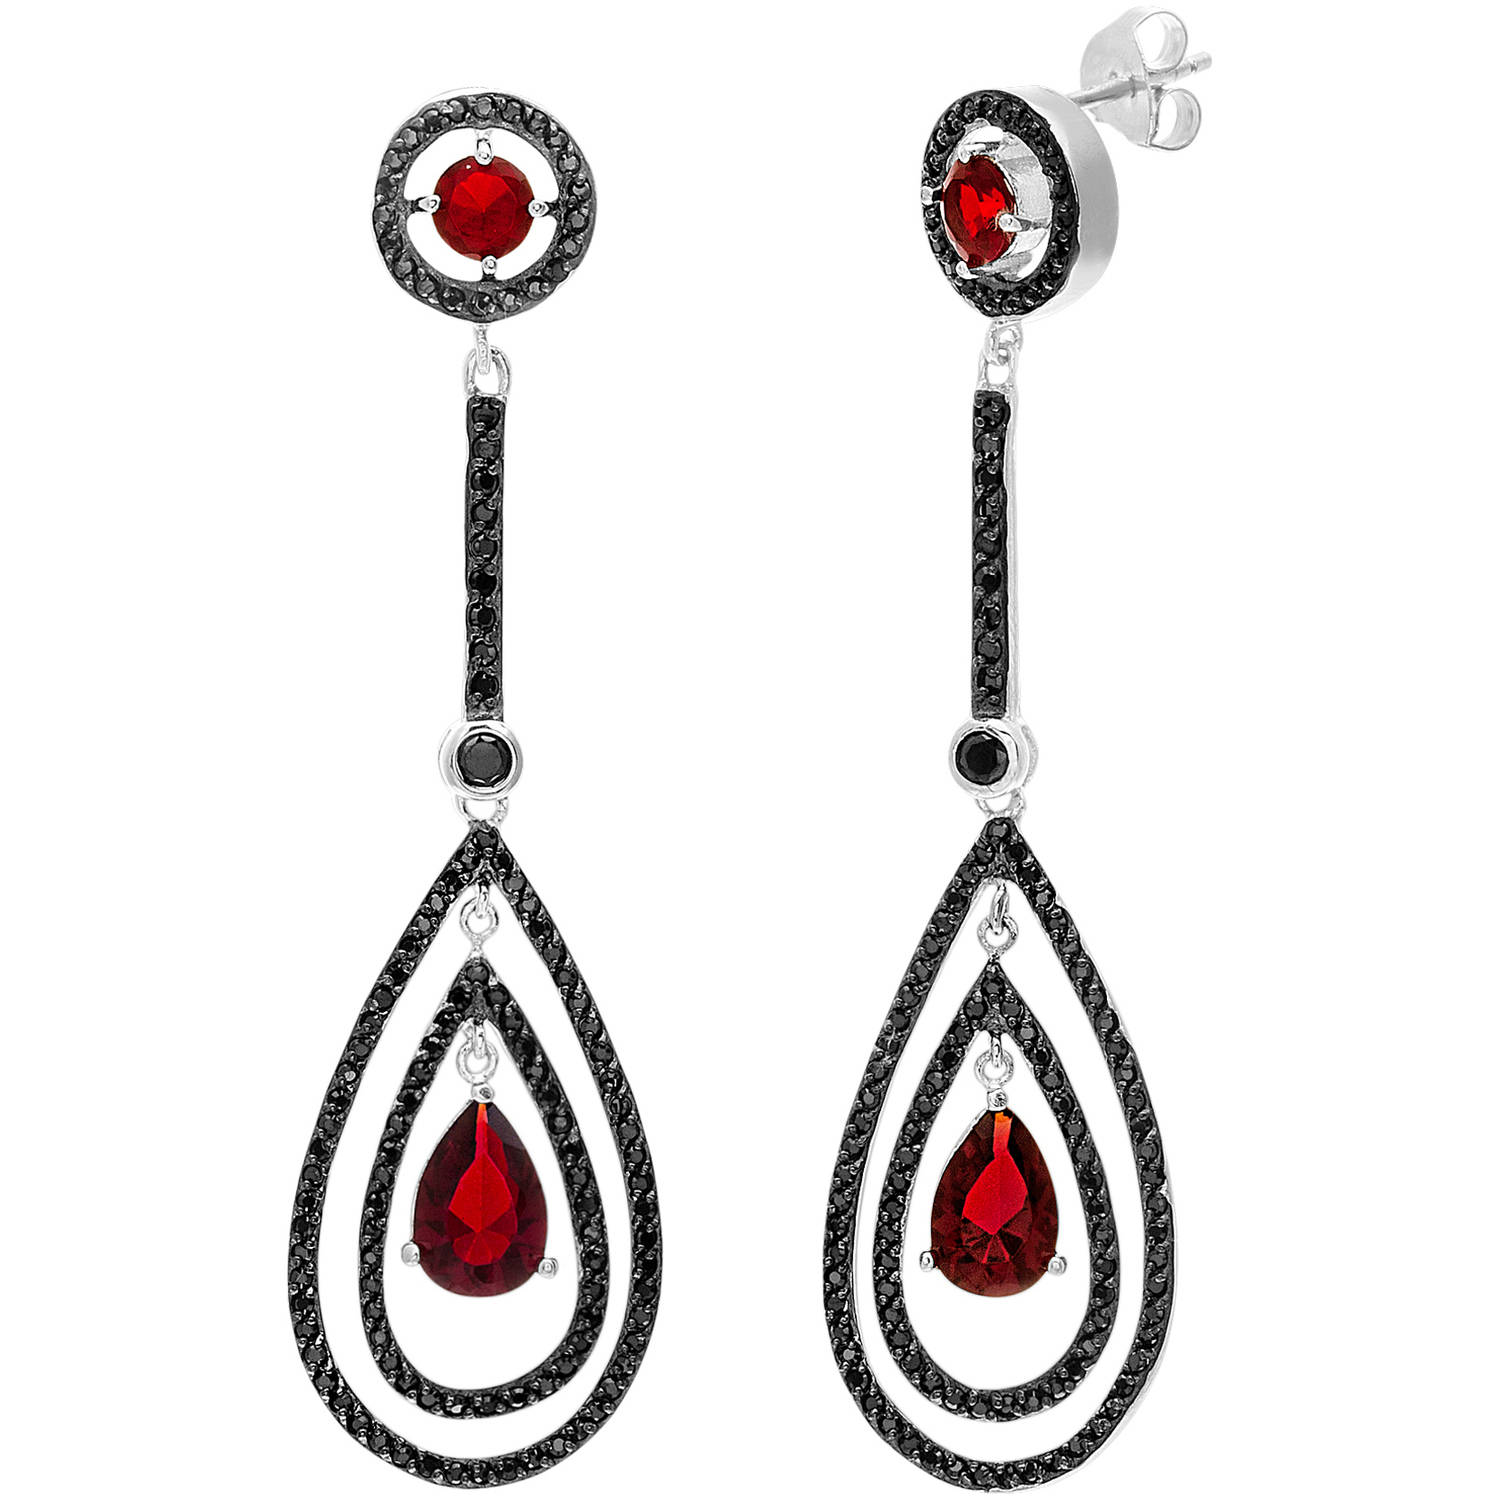 Angelique Silver Red and Black CZ Two-Tone Sterling Silver Teardrop Post Earrings